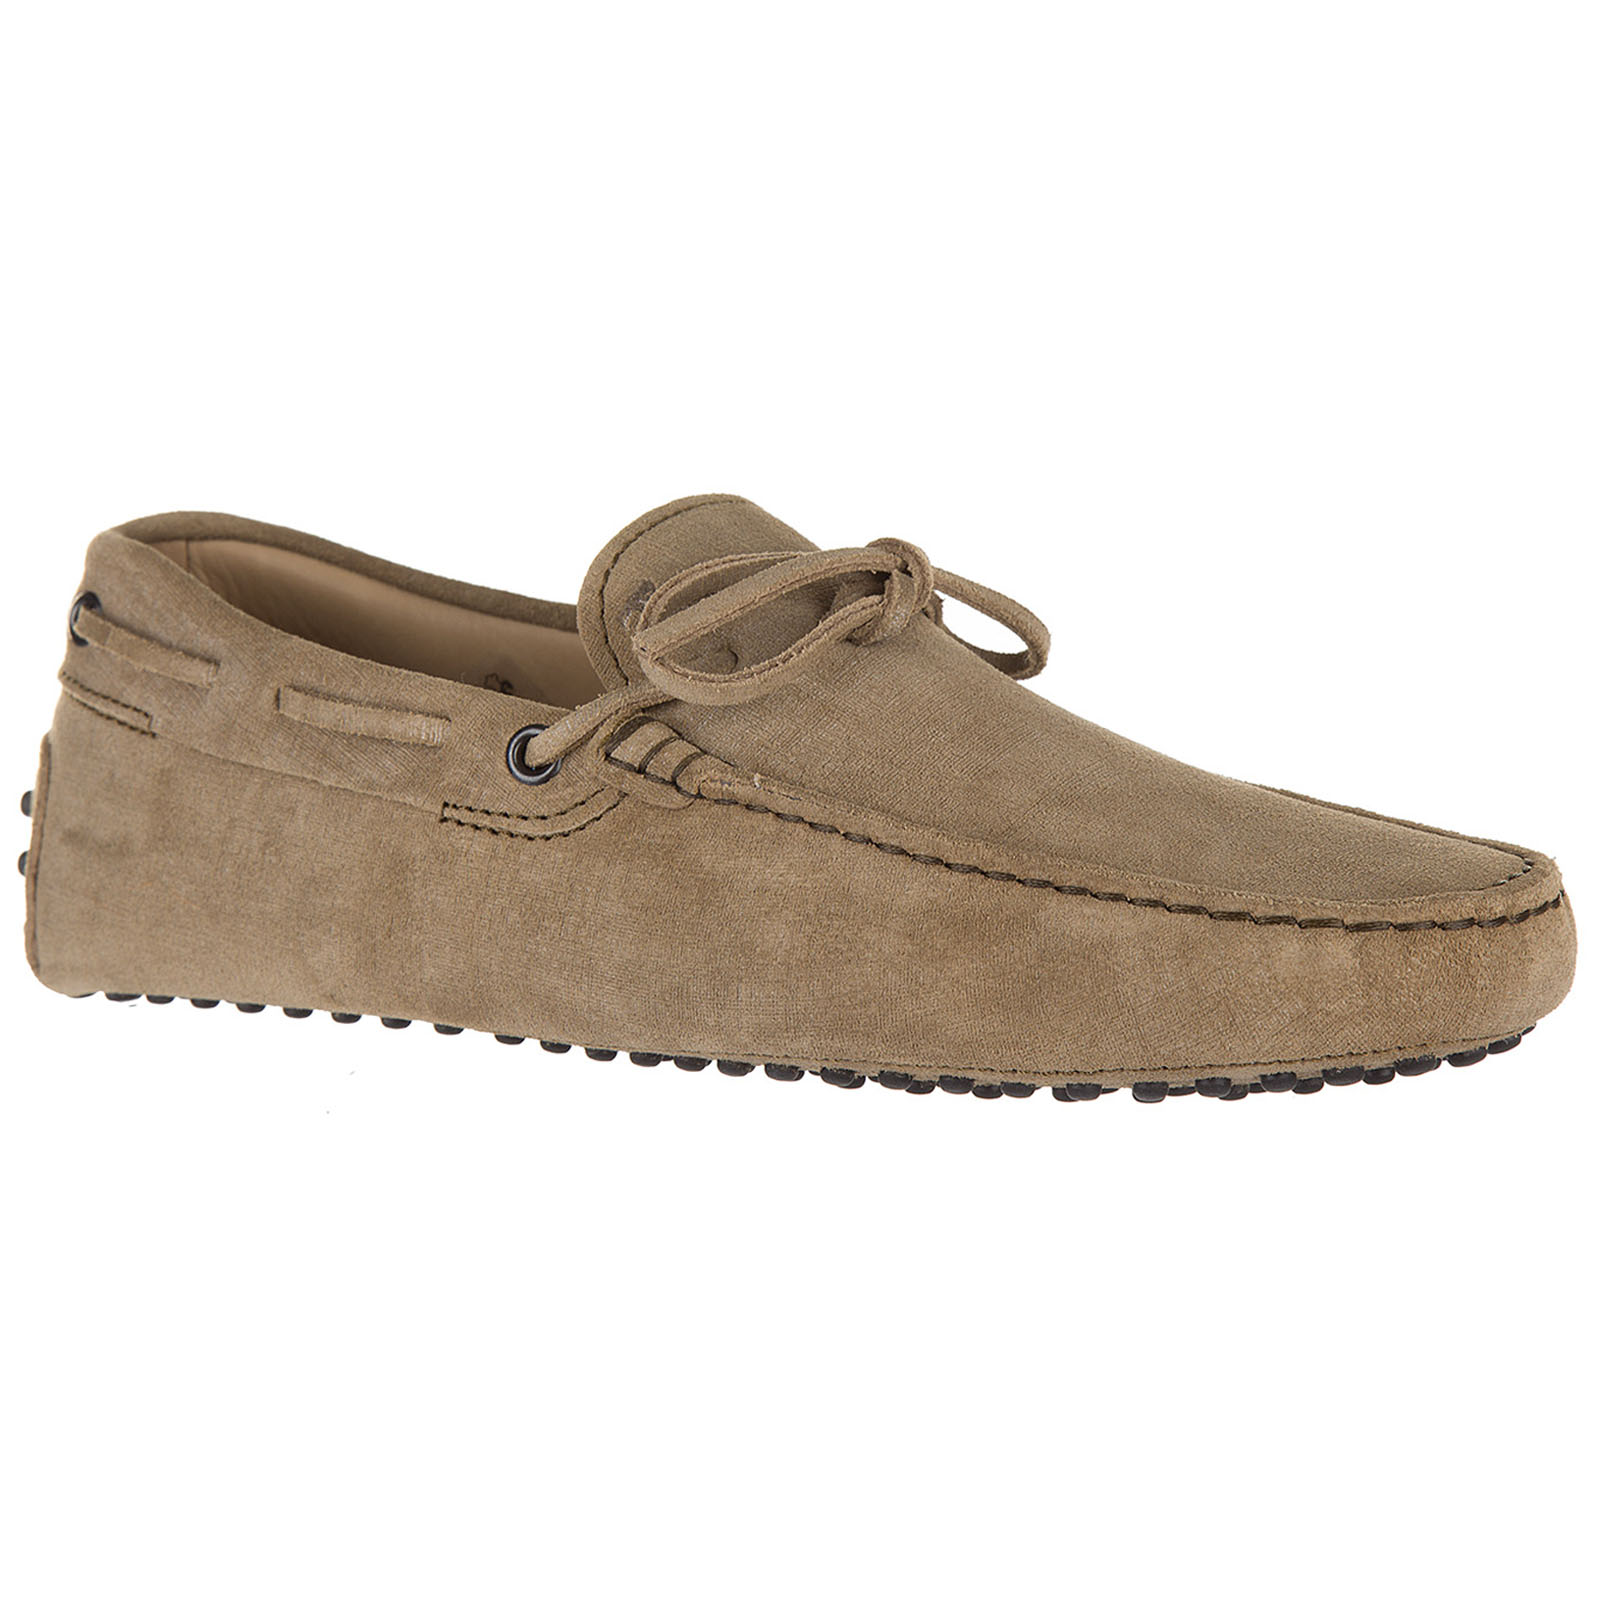 Men's leather loafers moccasins  laccetto gommini 122